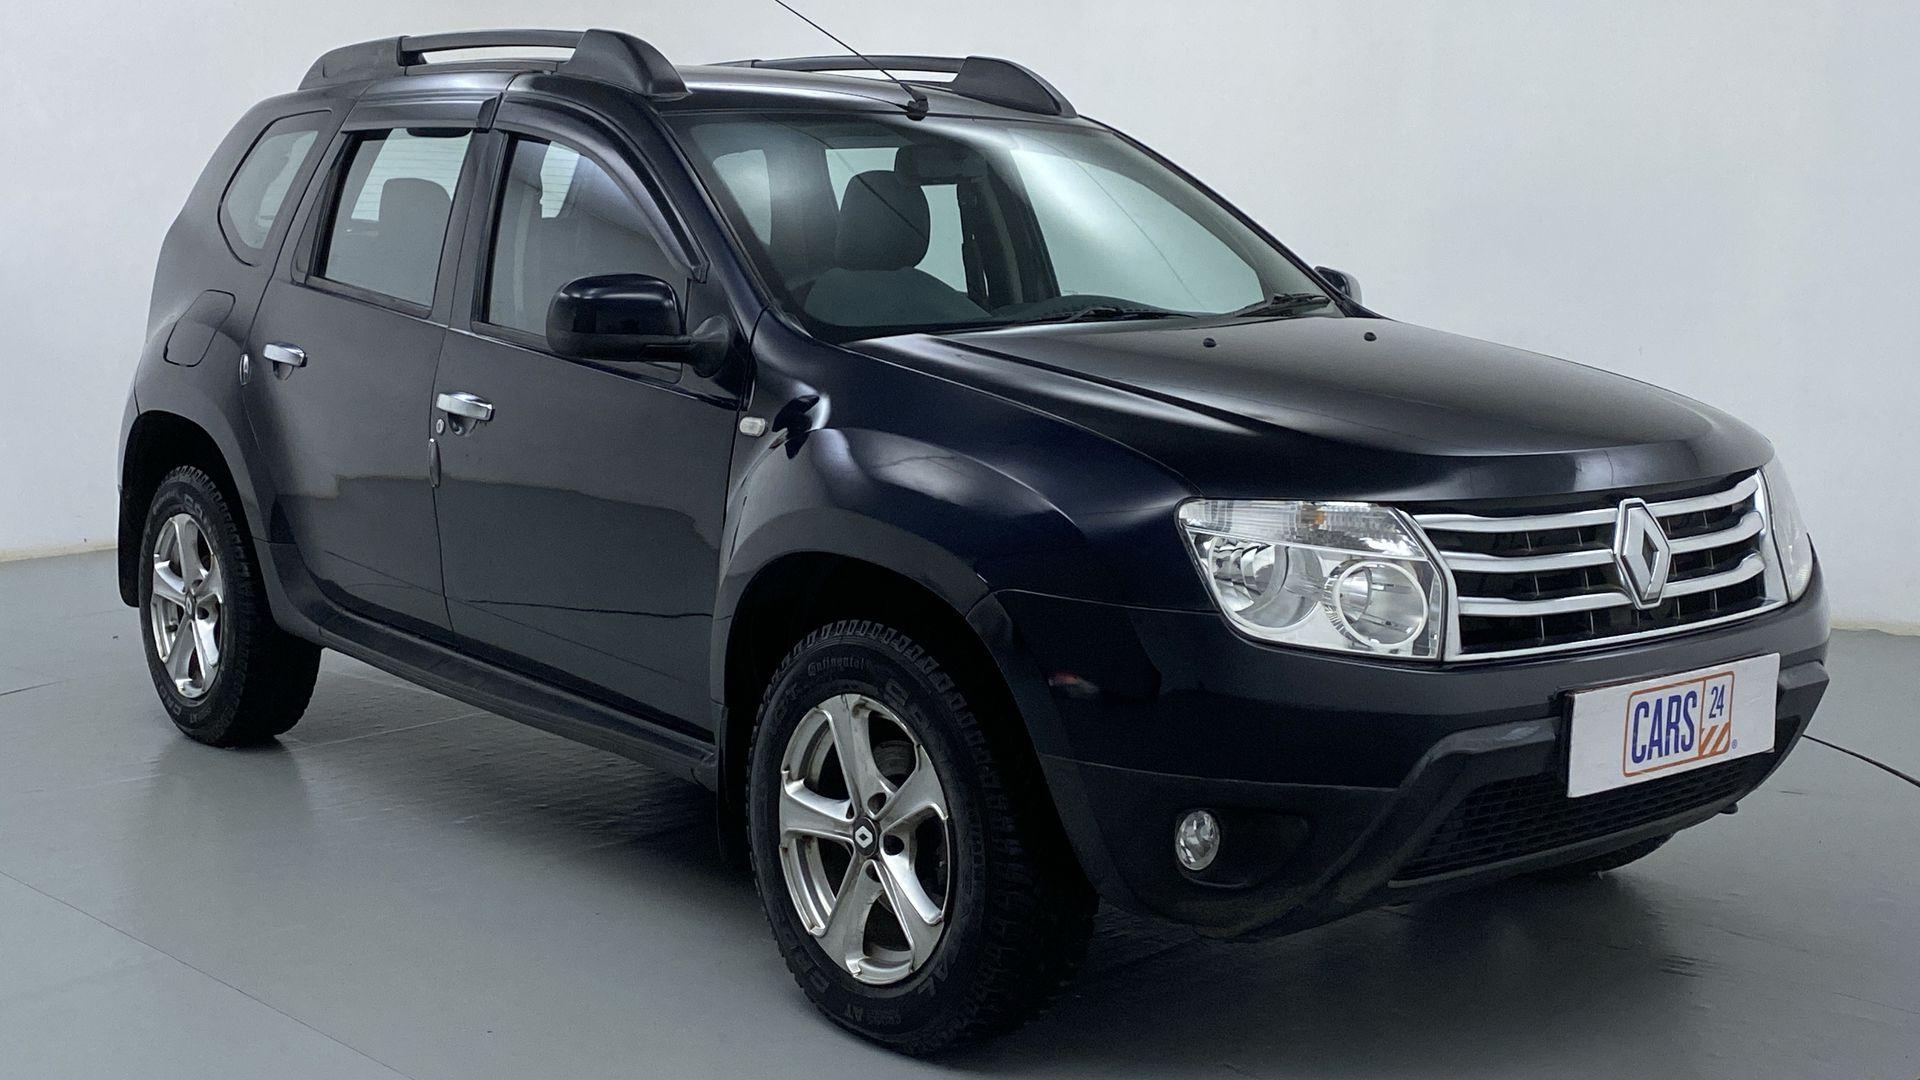 2015 Renault Duster 85 PS RXL